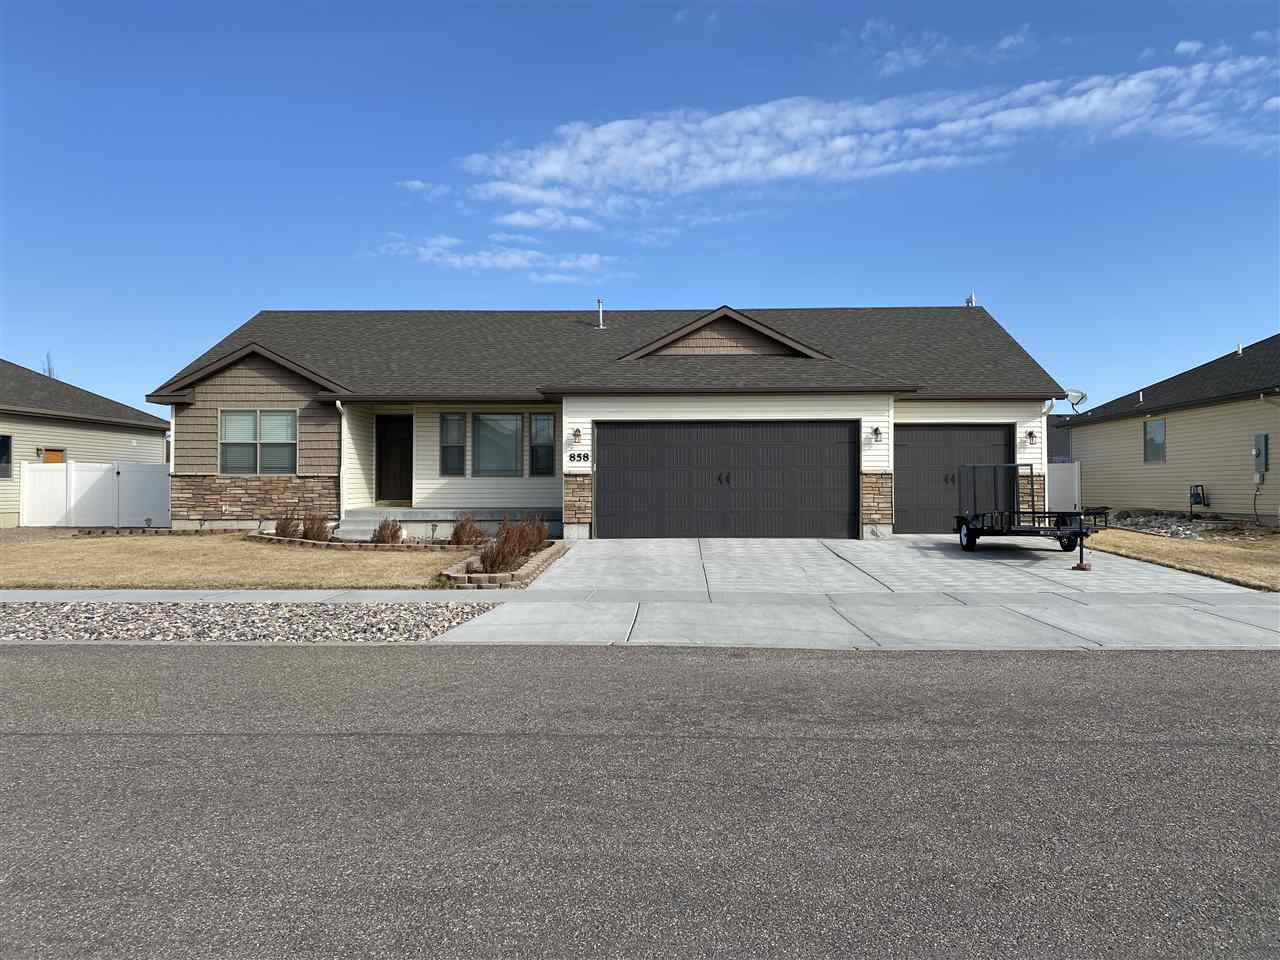 858 Wendy Property Photo - Chubbuck, ID real estate listing